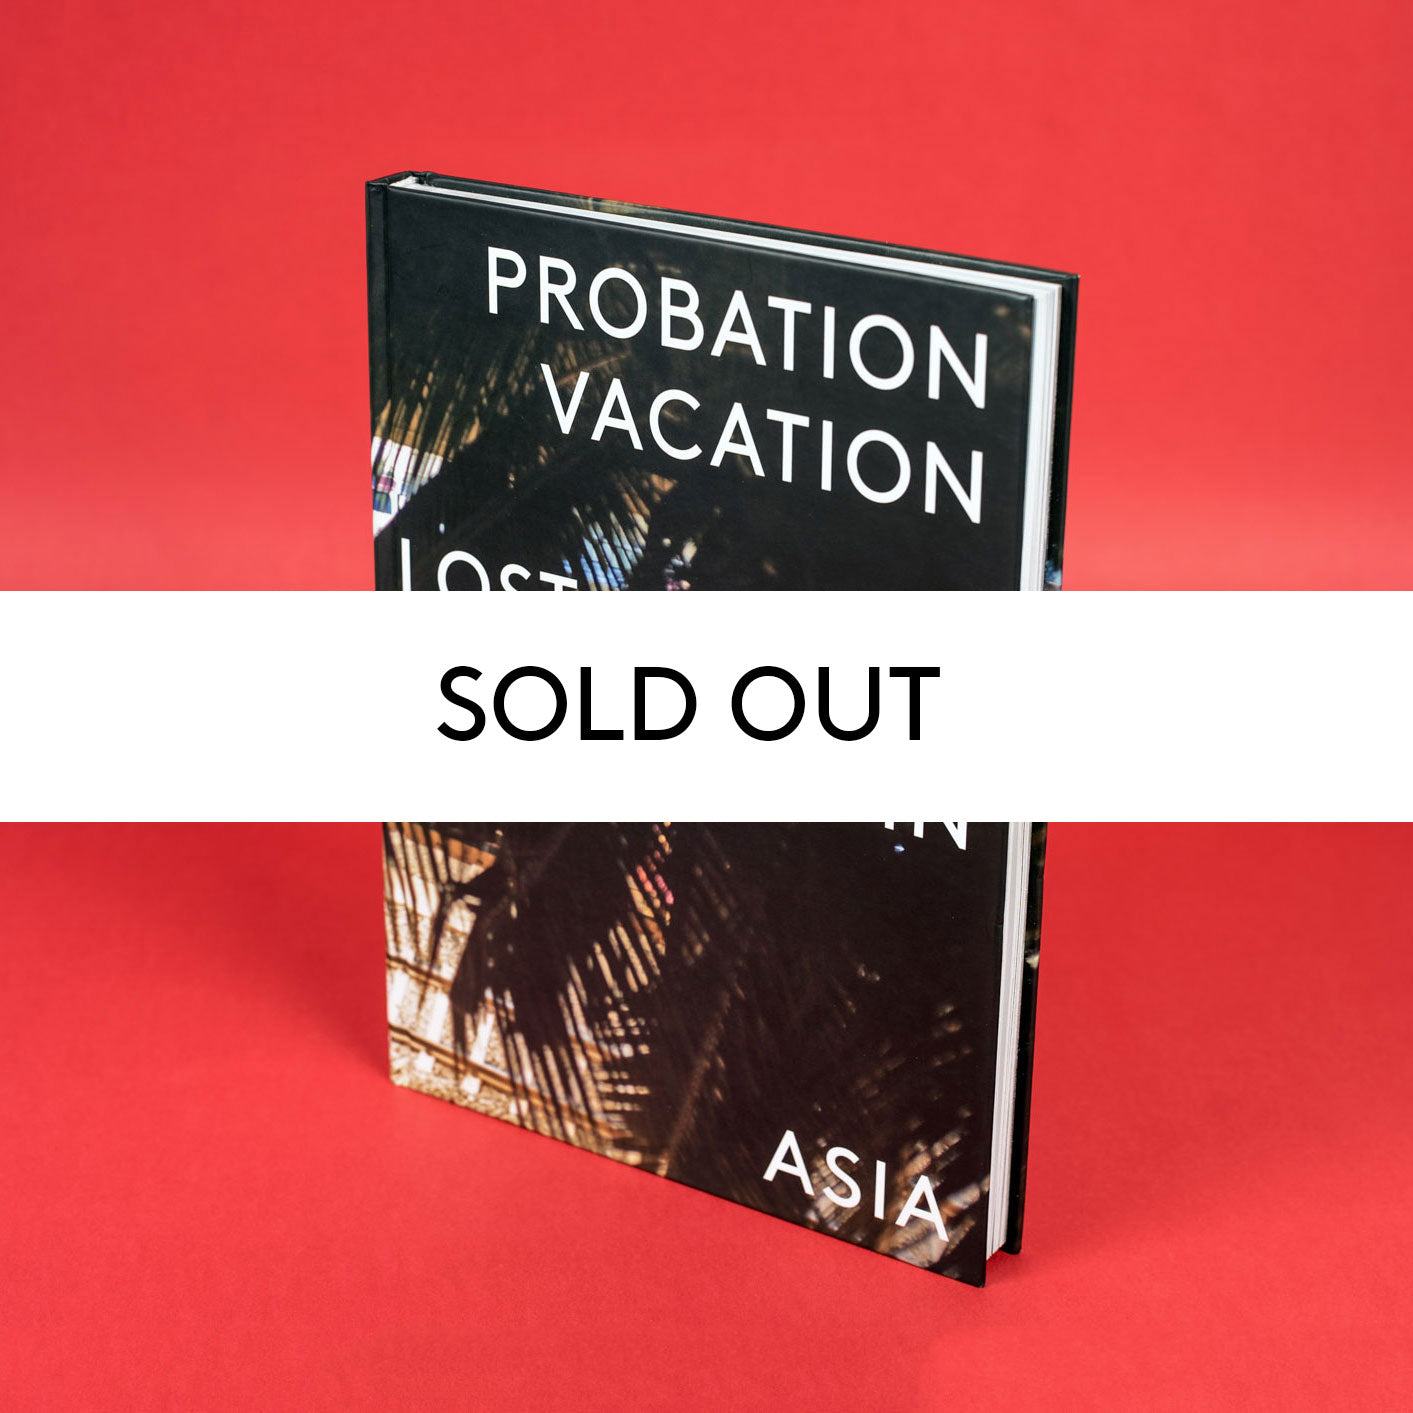 PROBATION VACATION LOST IN ASIA BY UTAH ETHER SOLD OUT COLLECTOR EDITION